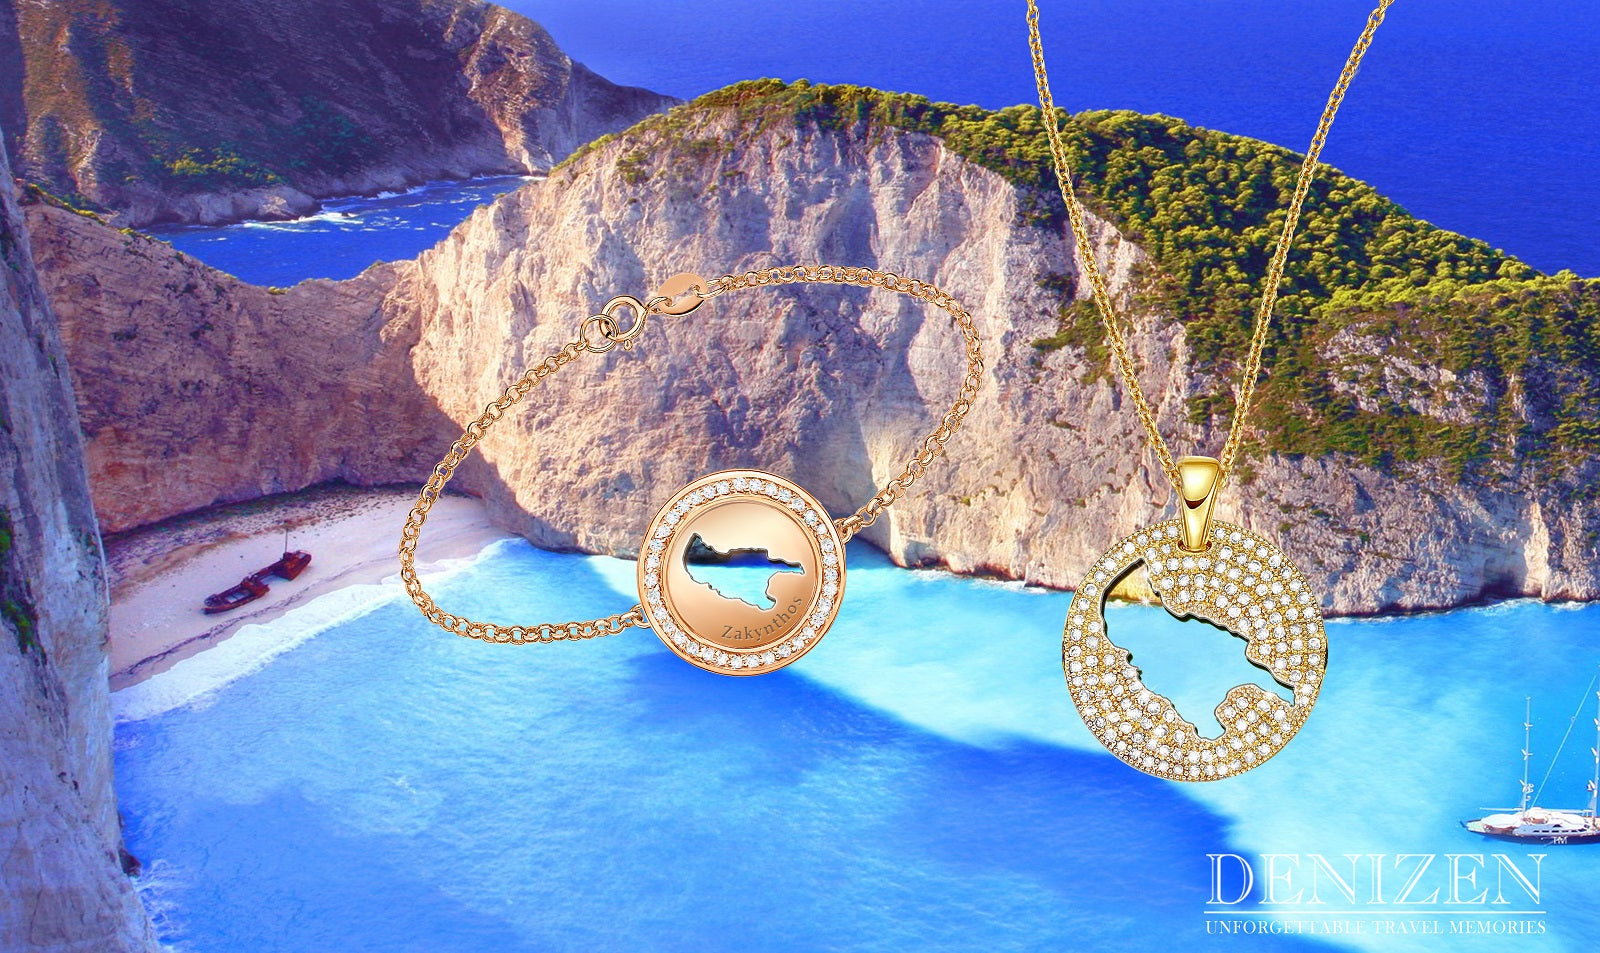 DENIZEN Bracelet of Zakynthos - Greece - gold jewelry